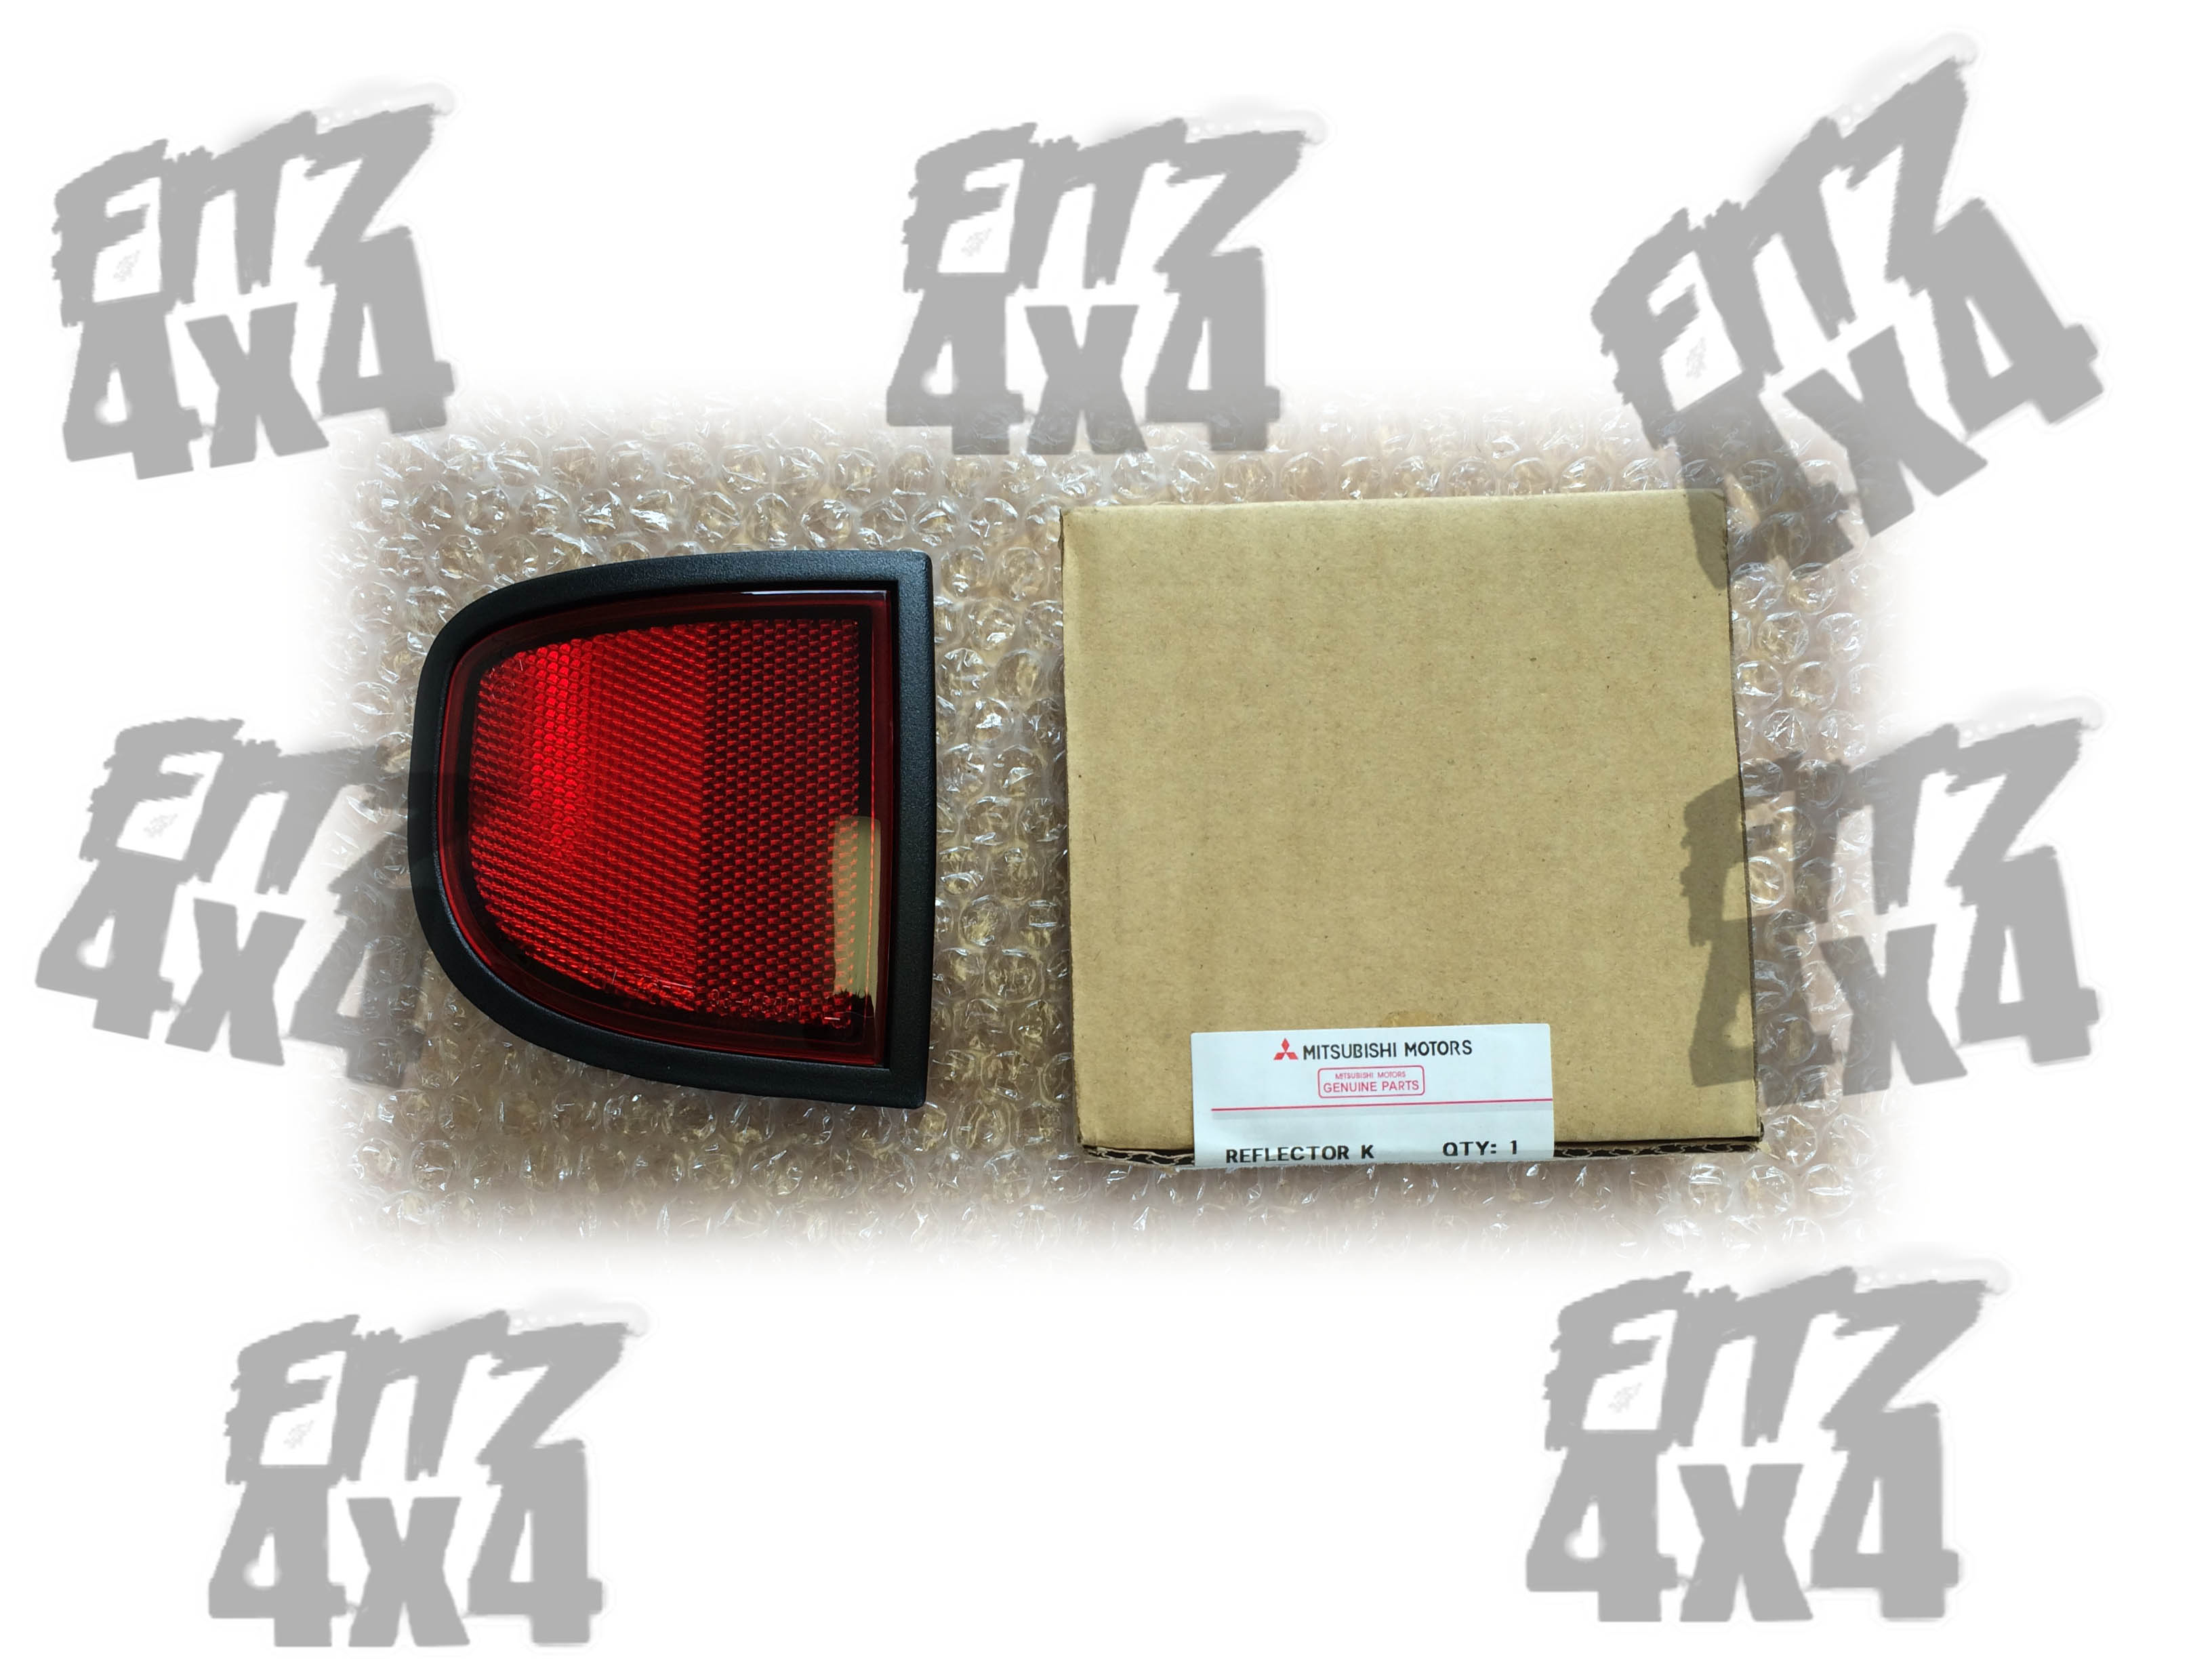 2006-2014 L200 rear left reflector